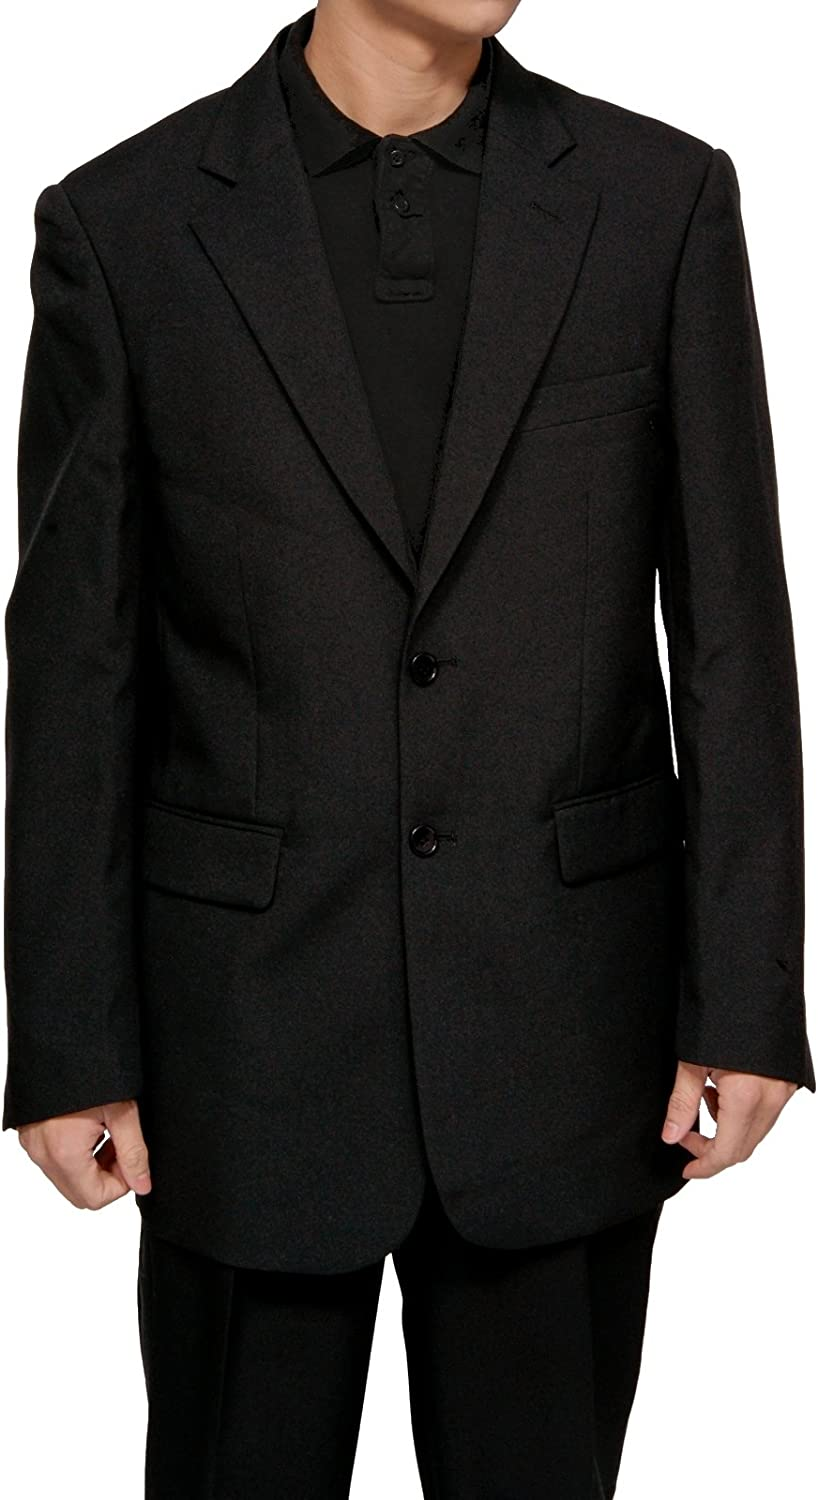 New Men's 2 Button Single Breasted Black Dress Suit - Includes Jacket and Pants